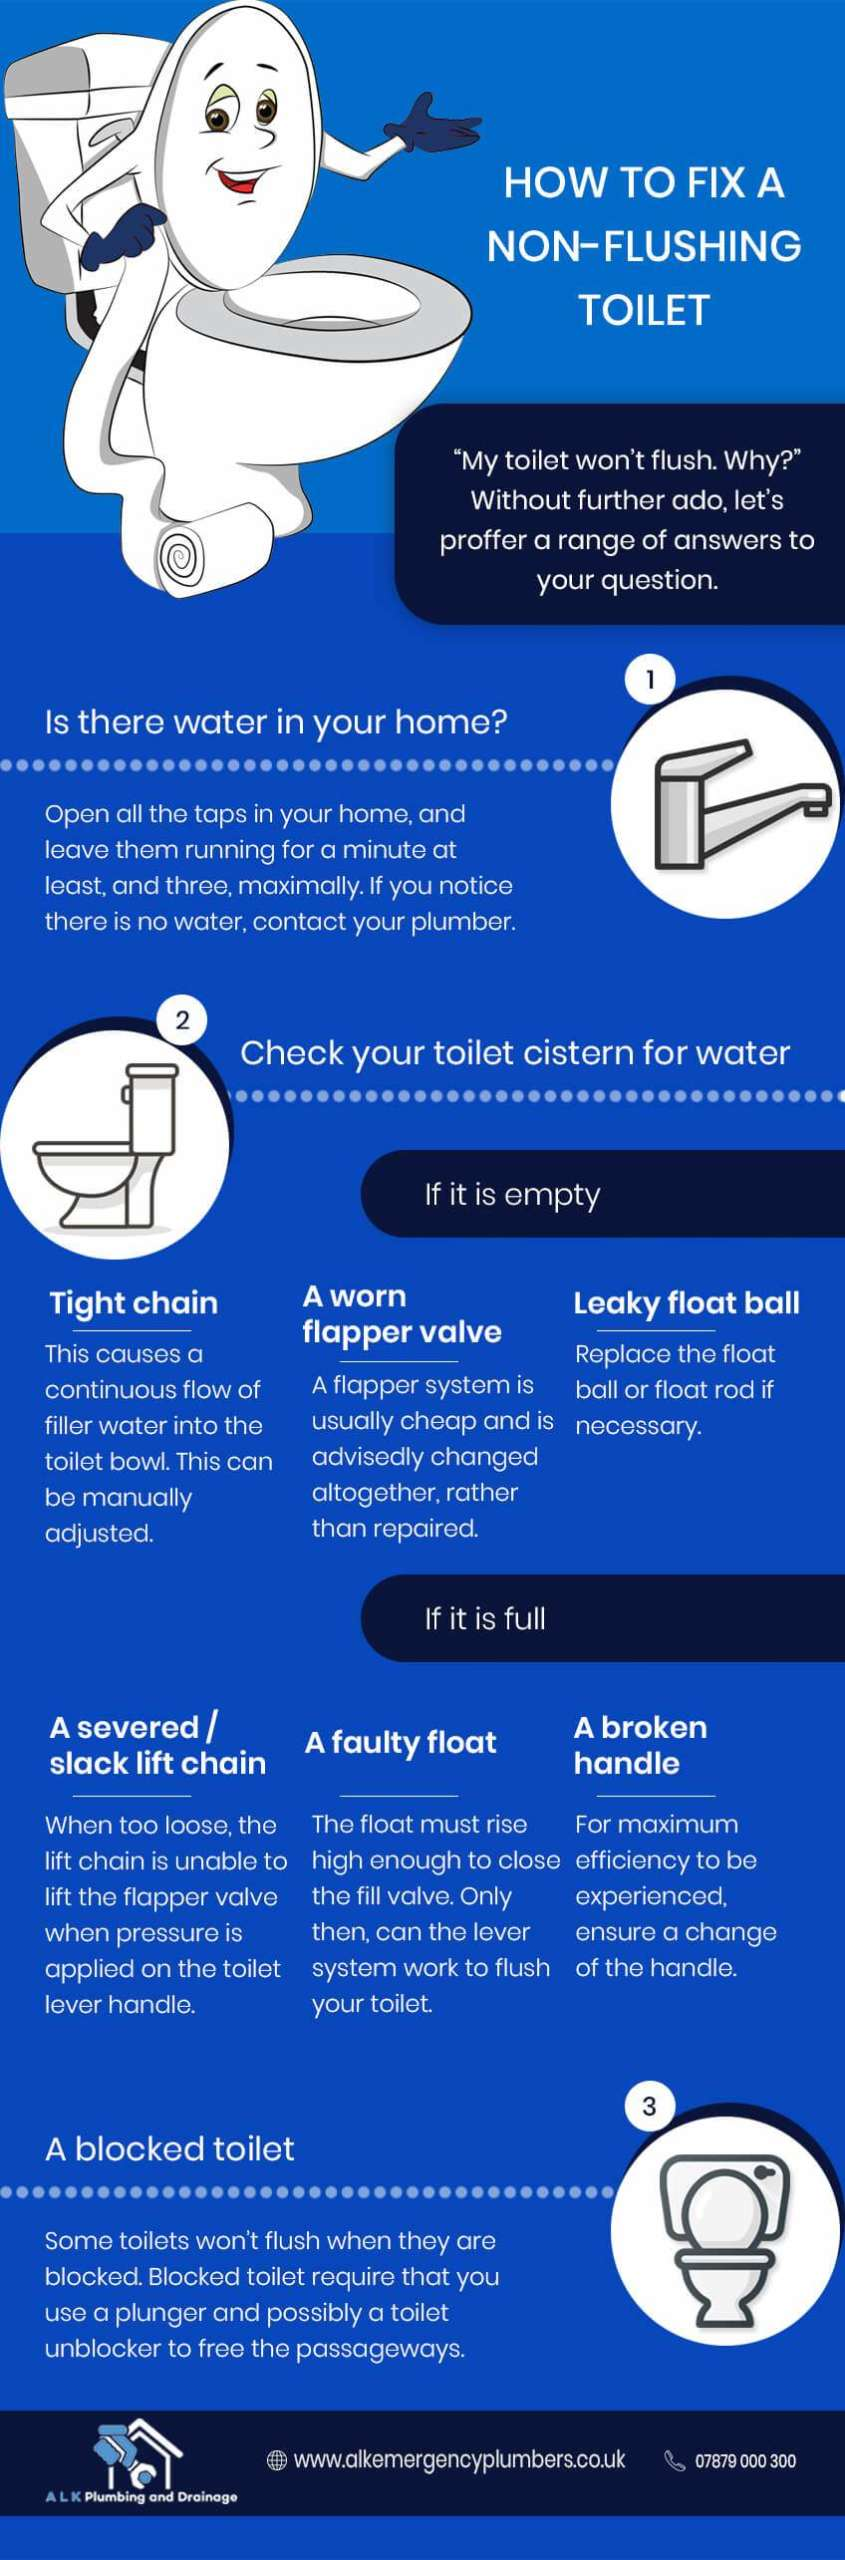 how-to-fix-a-nonflushing-toilet